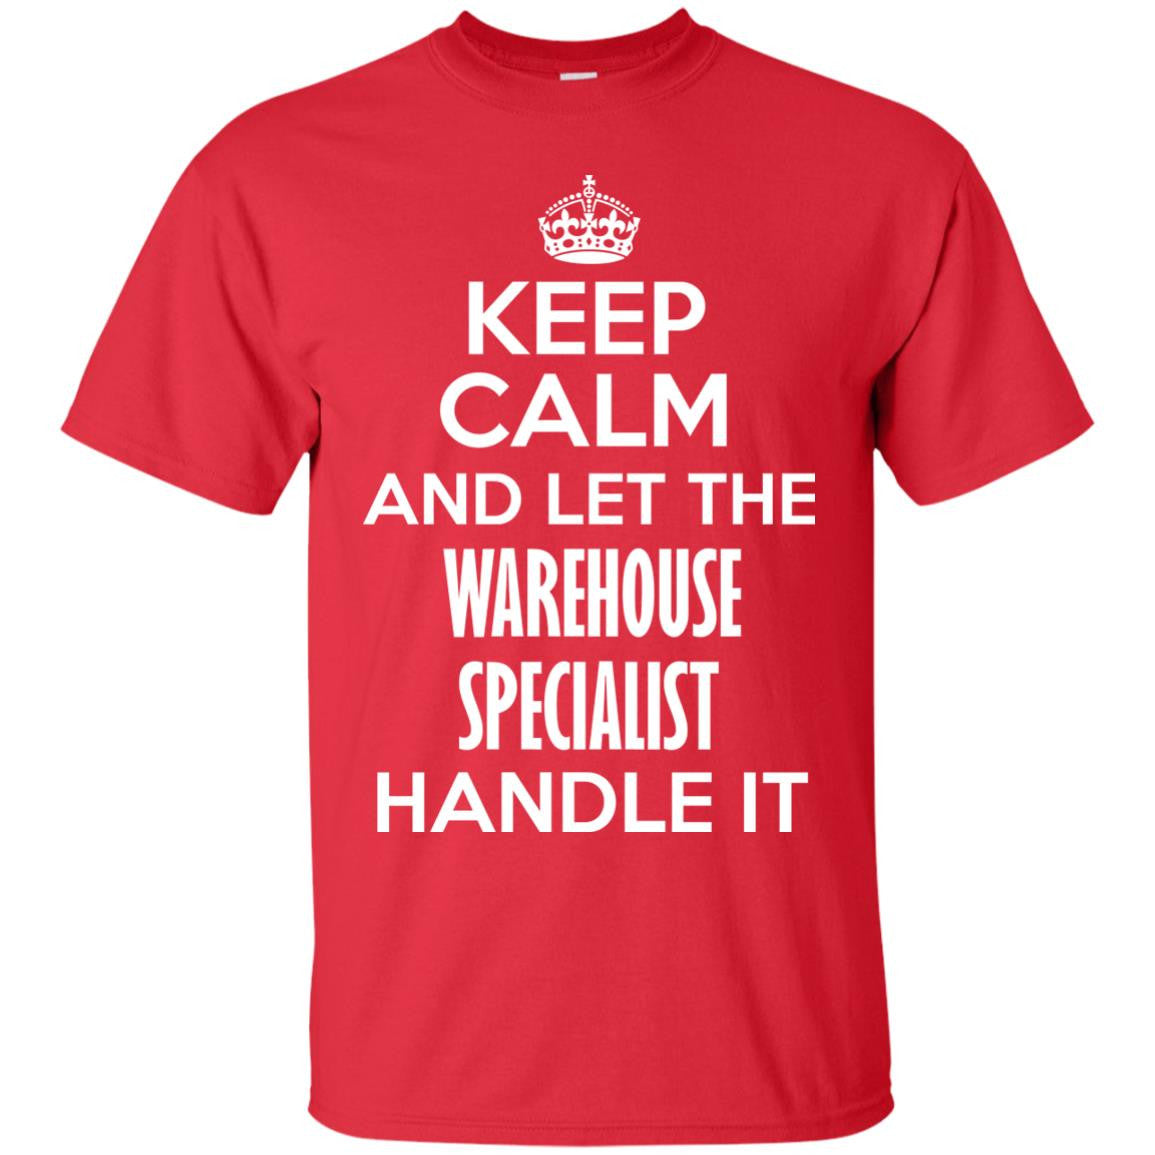 warehouse specialist warehouse specialist - Warehouse Specialist